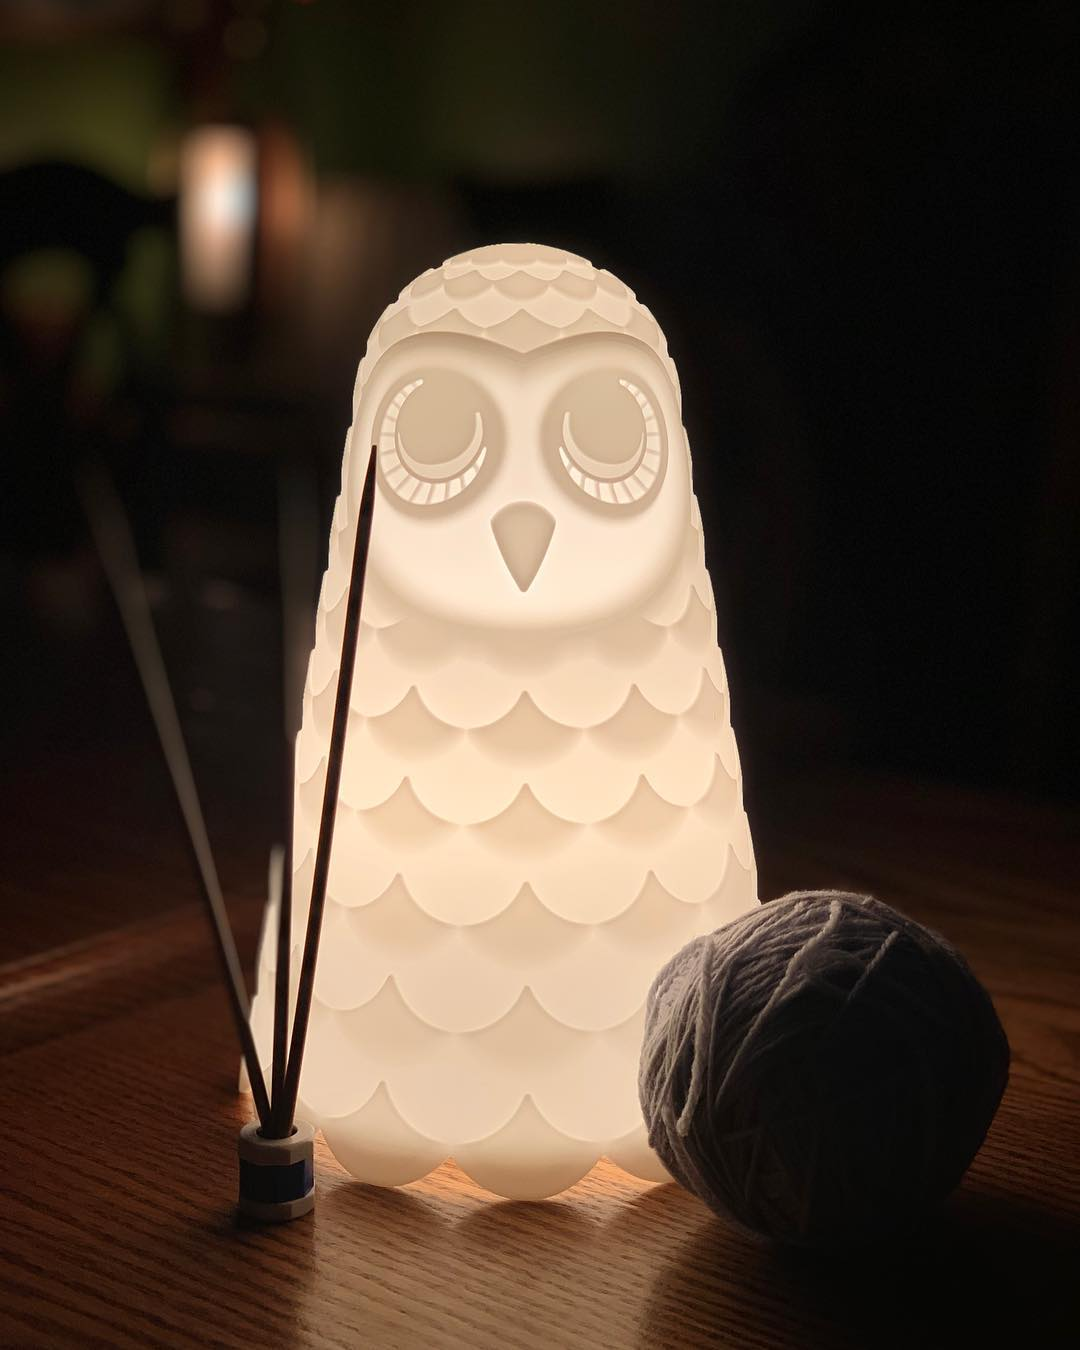 Find us at the back tables marked by the owl lamp.